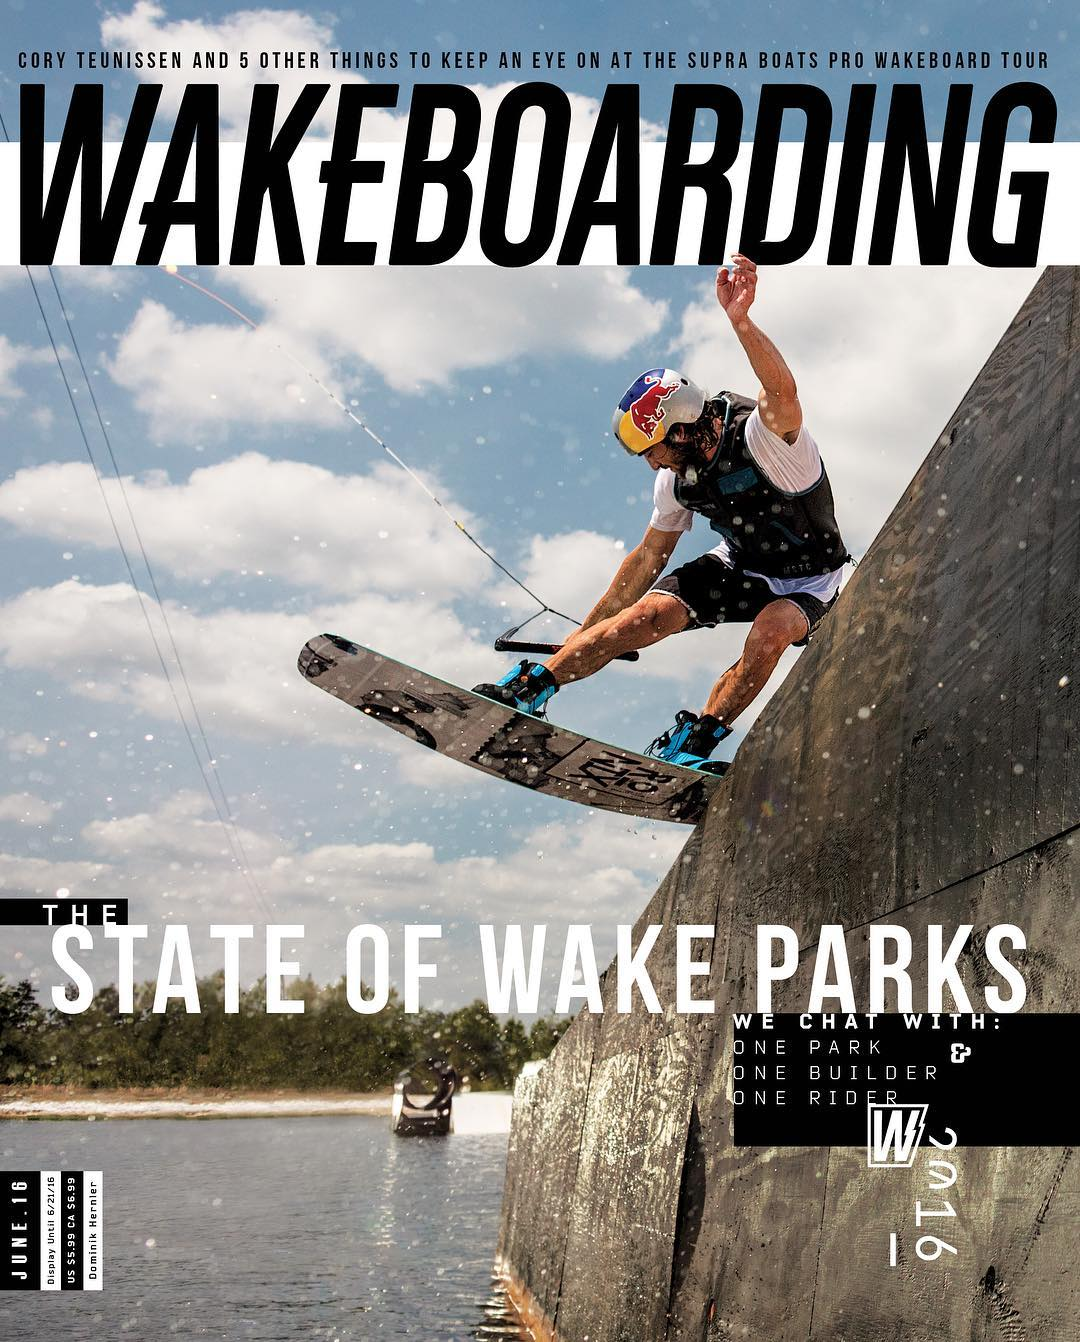 @domhernler holding down the cover of the new @wakeboardingmag, shot by non other than @thegoldenbear. Congrats Dommy! #ronix2016 #oneloveinwake #takeflight #fortifiedwithlakevibes #kinetikproject #aquaticresearchanddevelopmentlab